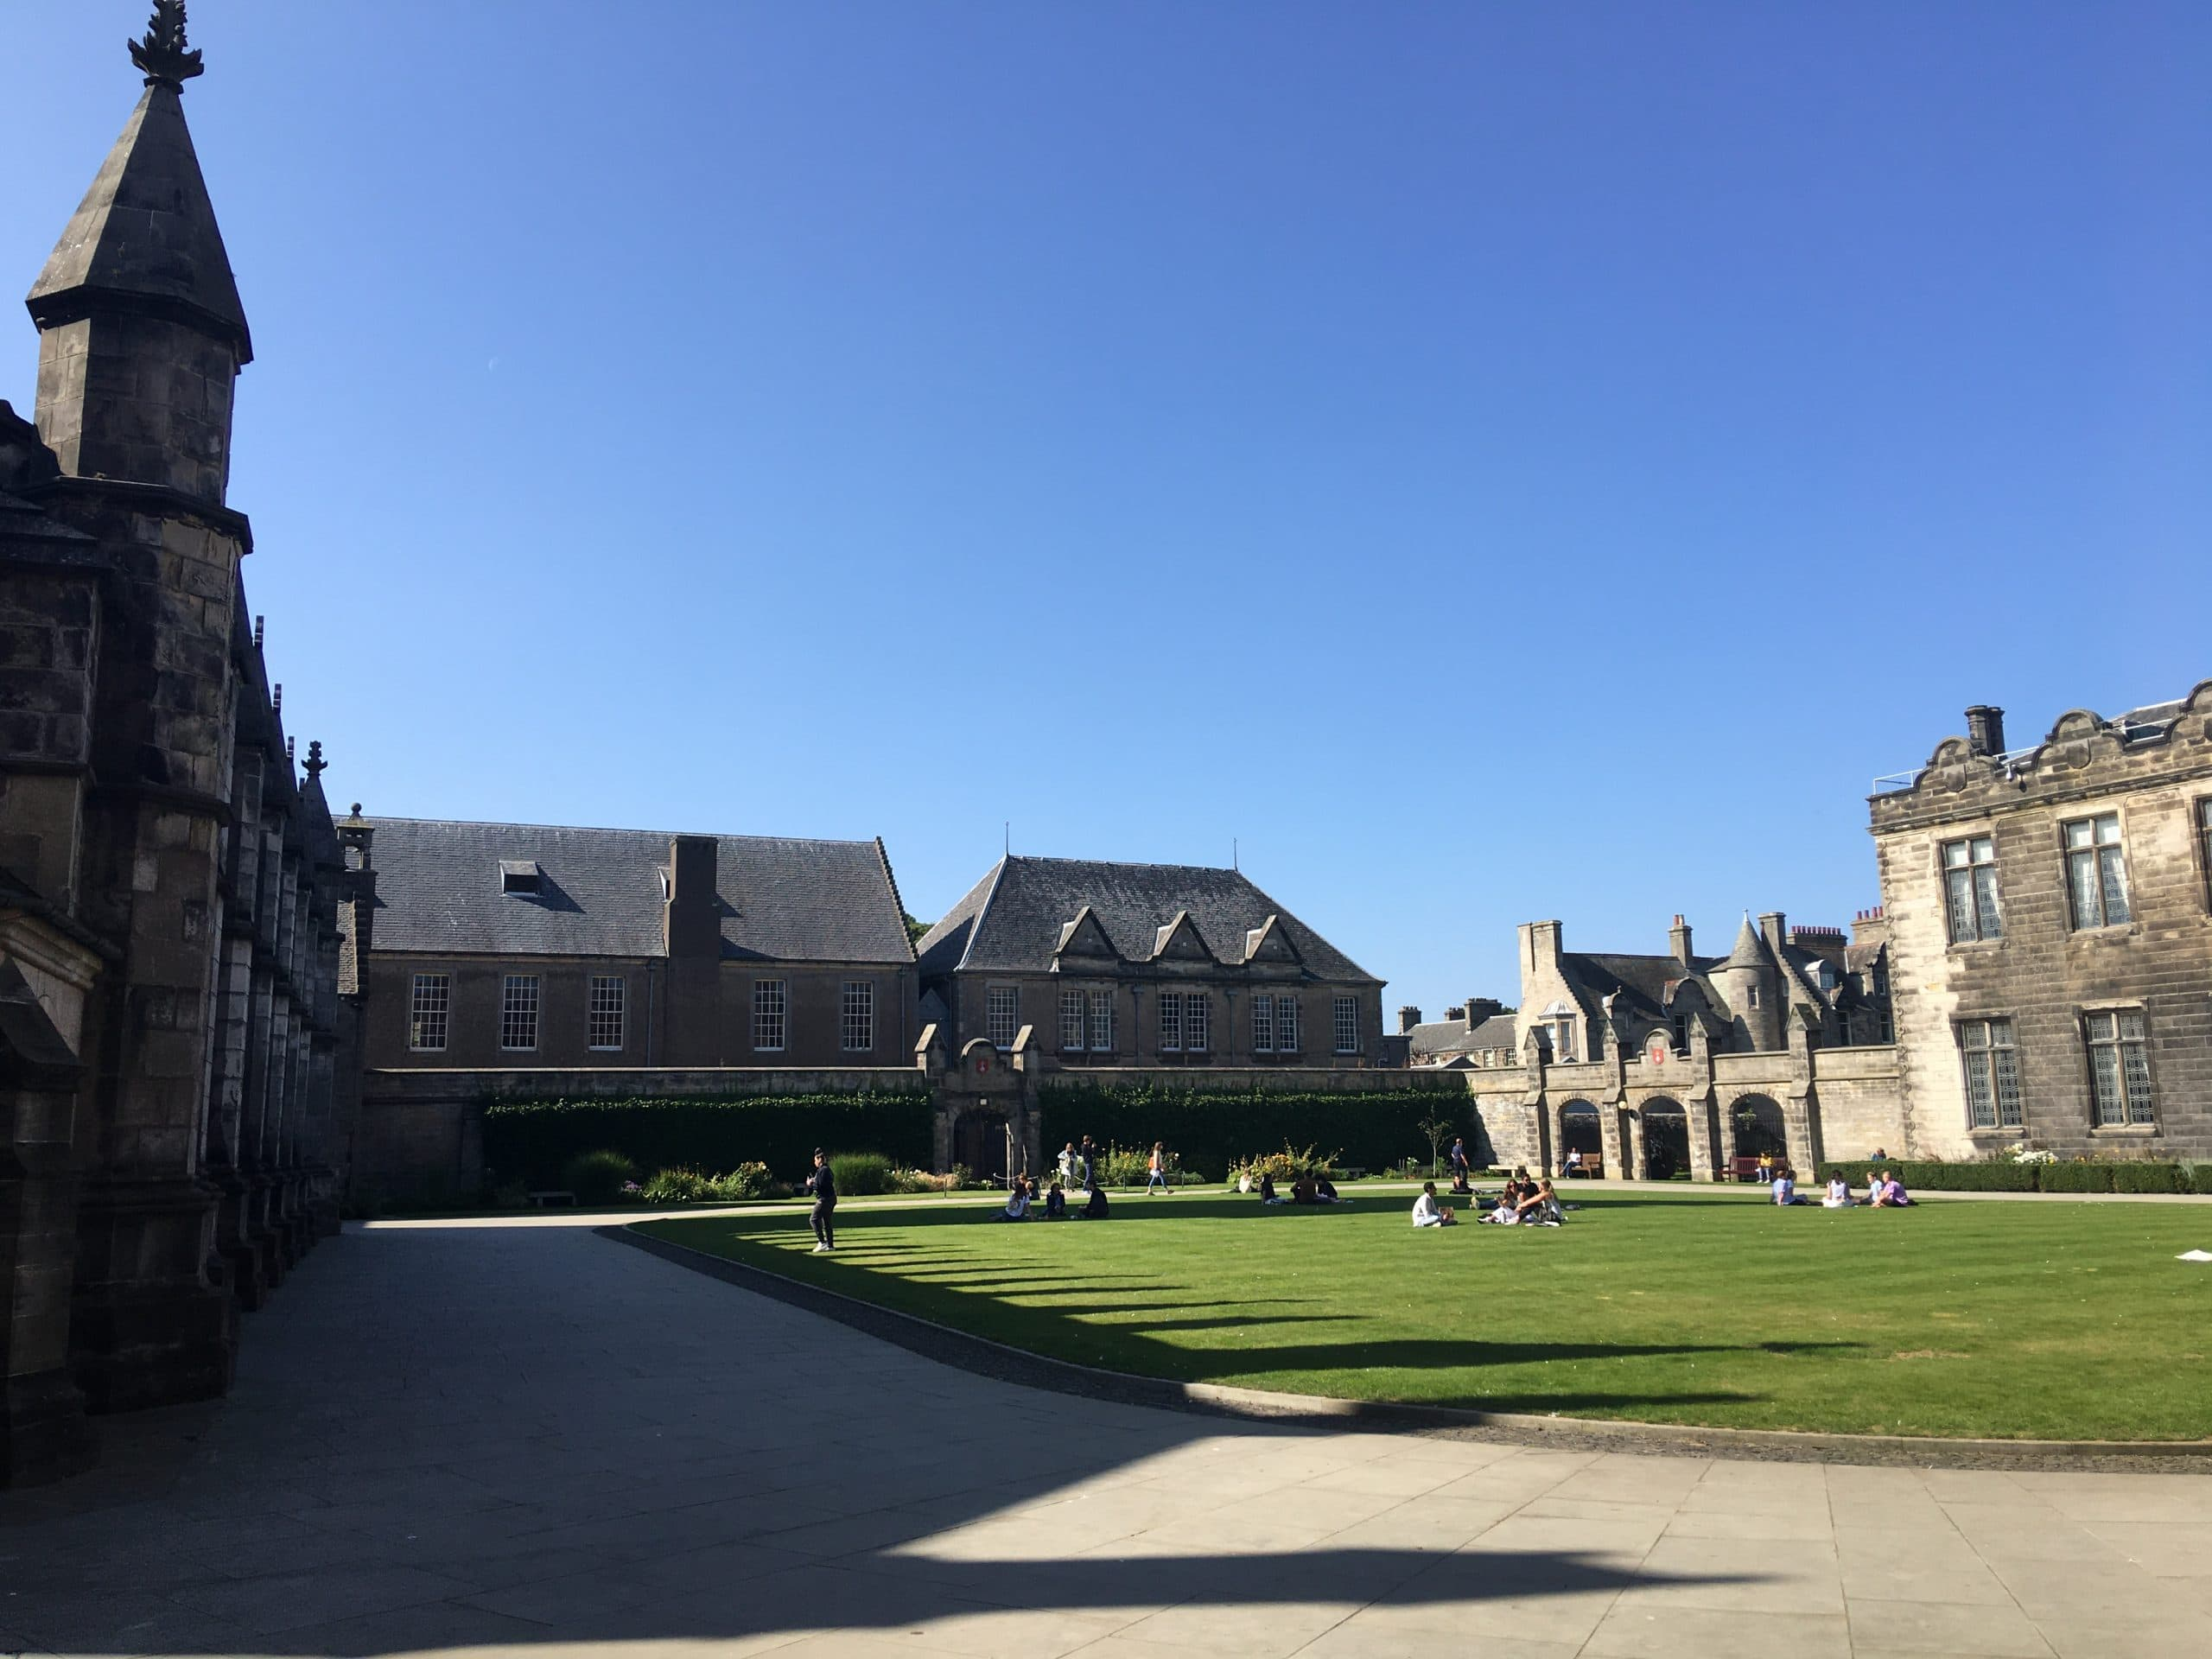 Seeing St Salvator's Quadrangle for the first time